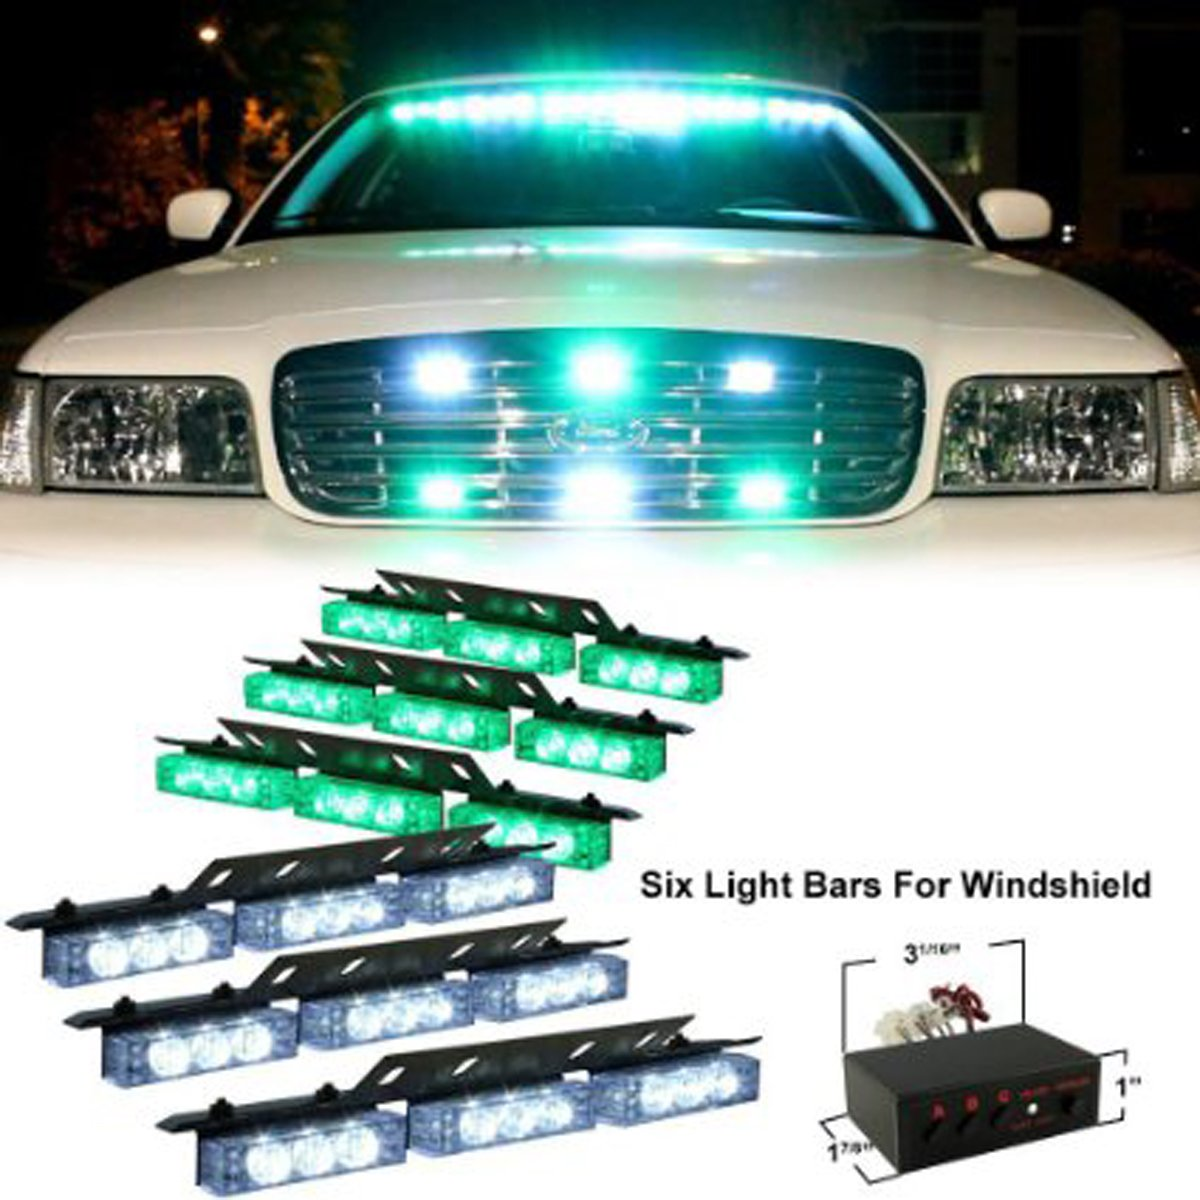 Vehicle Strobe Lights >> Pacask 54 Led Warning Use Flashing Strobe Lights Emergency Vehicle Strobe Lights Bar For Windshield Dash Grille White Green